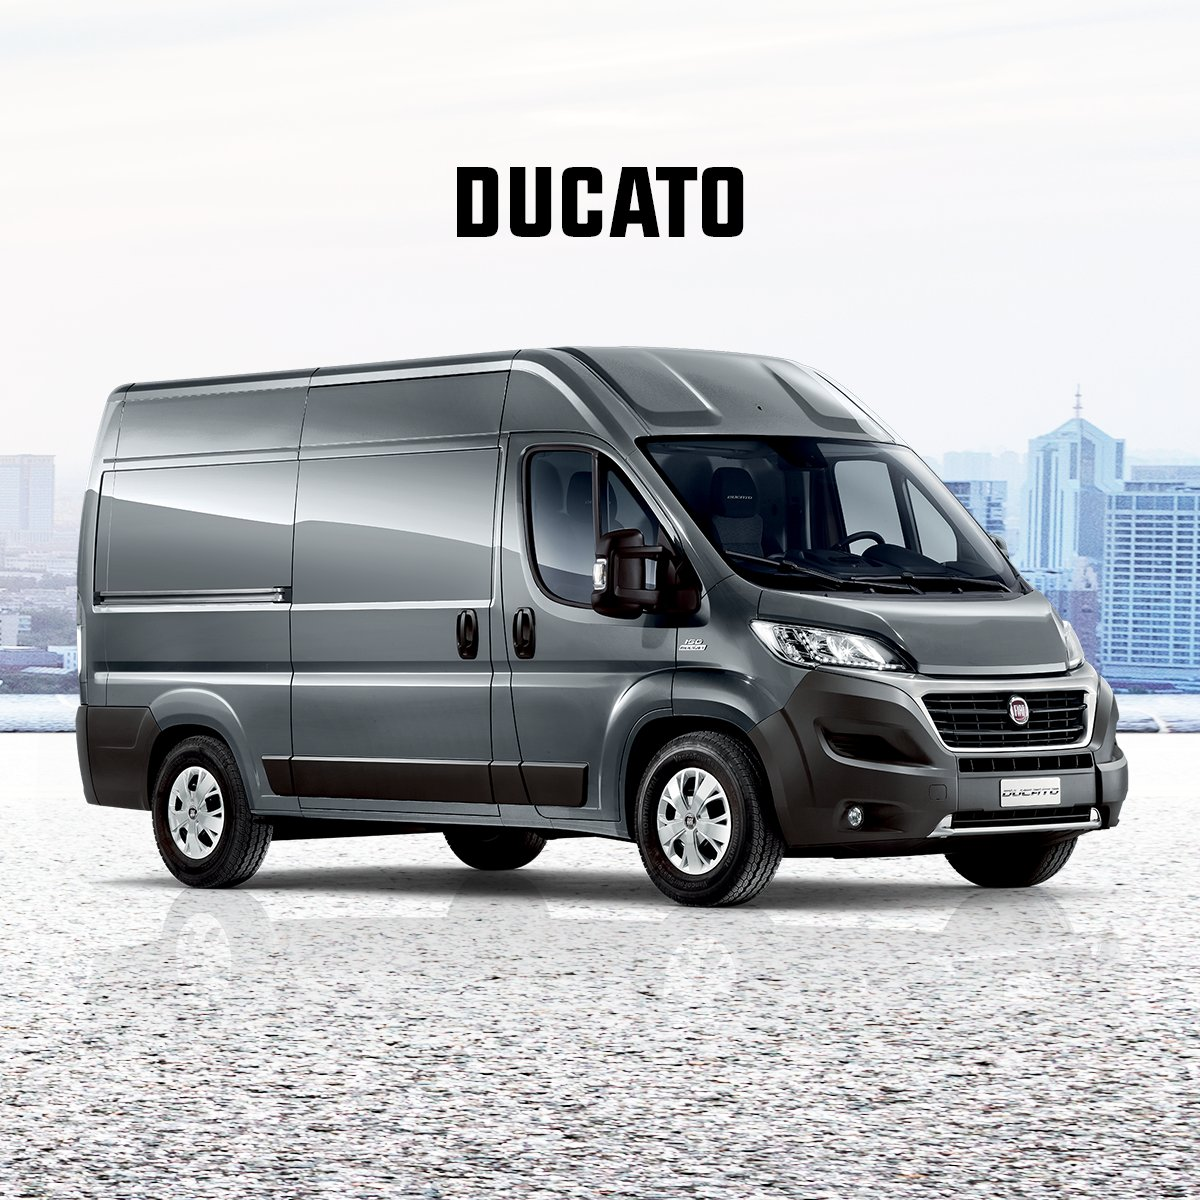 ducato fiat auto youtube professional imagen bulgaria by maxresdefault watch